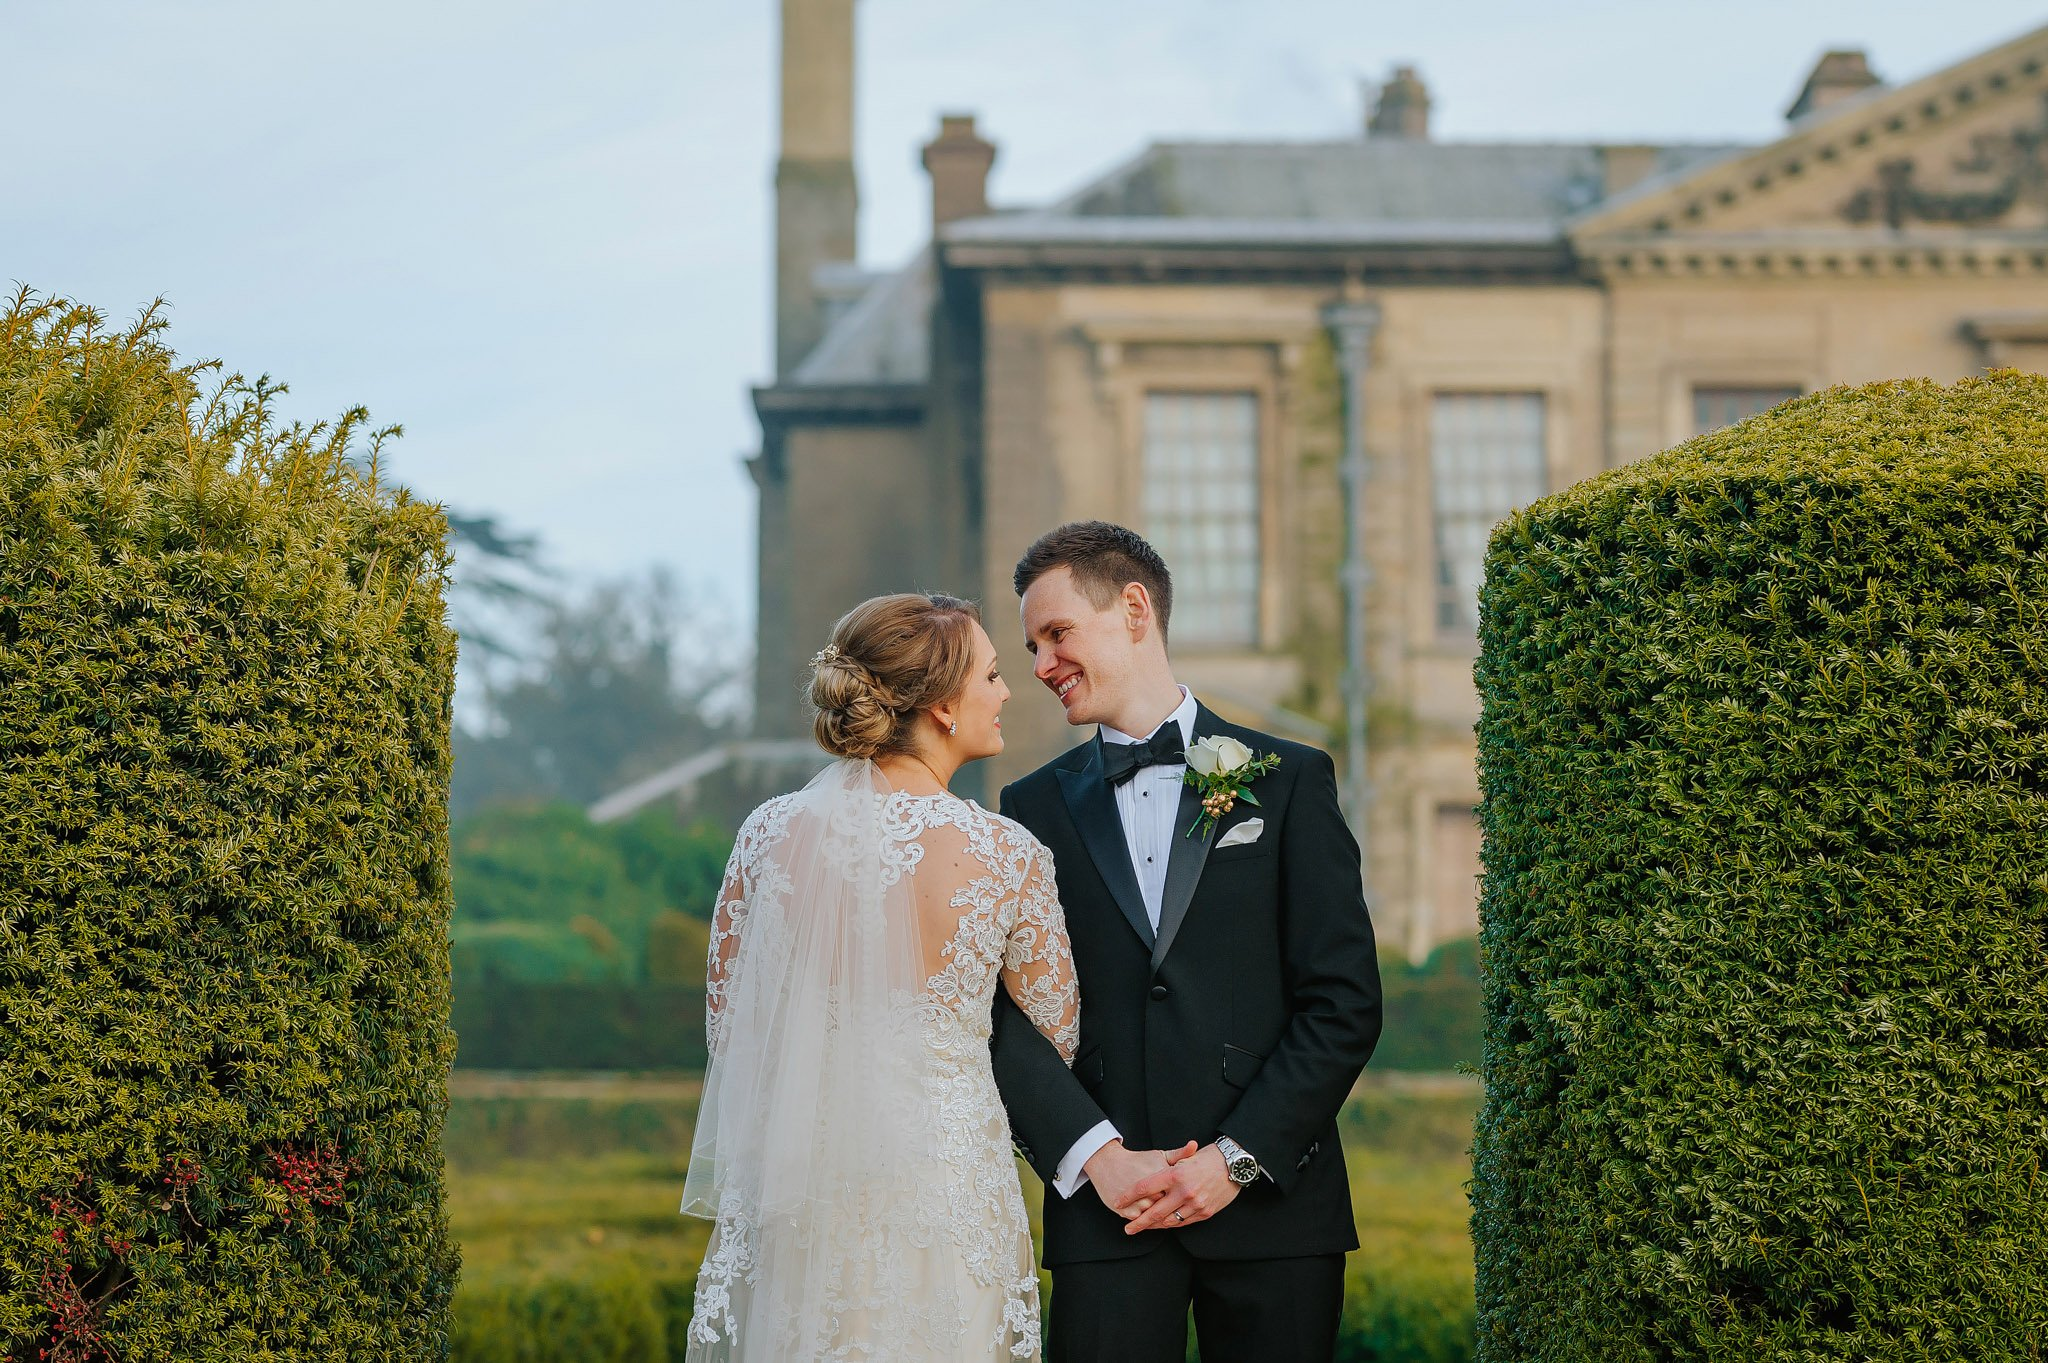 Coombe Abbey wedding in Coventry, Warwickshire - Sam + Matt 53